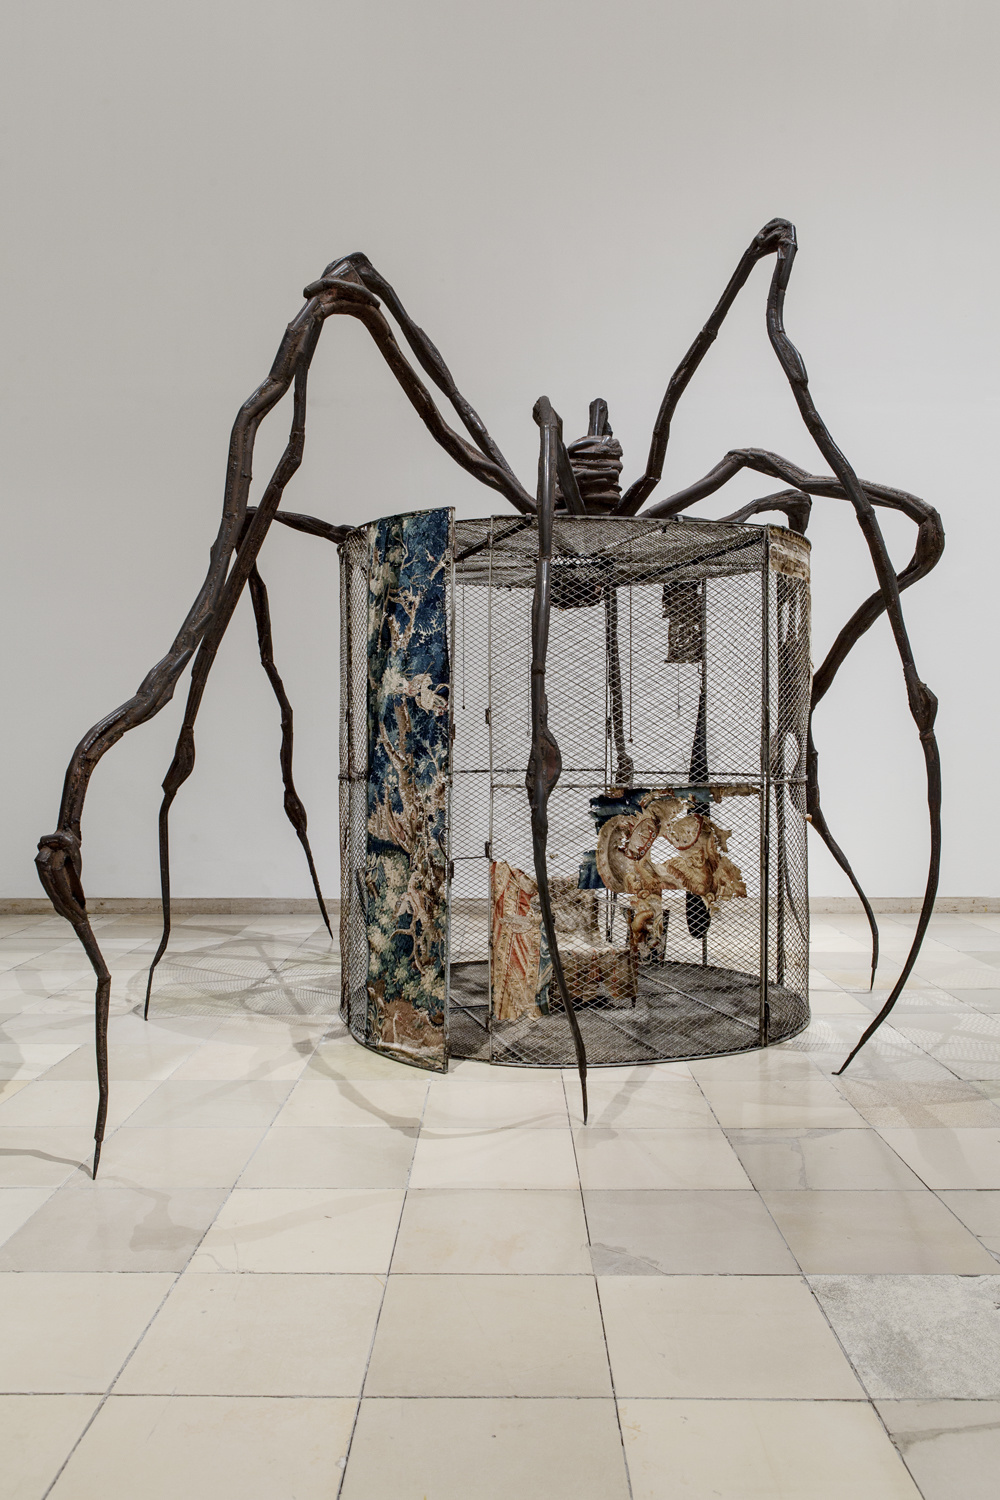 Spider (Cell), 1997. Steel, tapestry, wood, glass, fabric, rubber, silver, gold, and bone. Collection The Easton Foundation, New York. © 2017